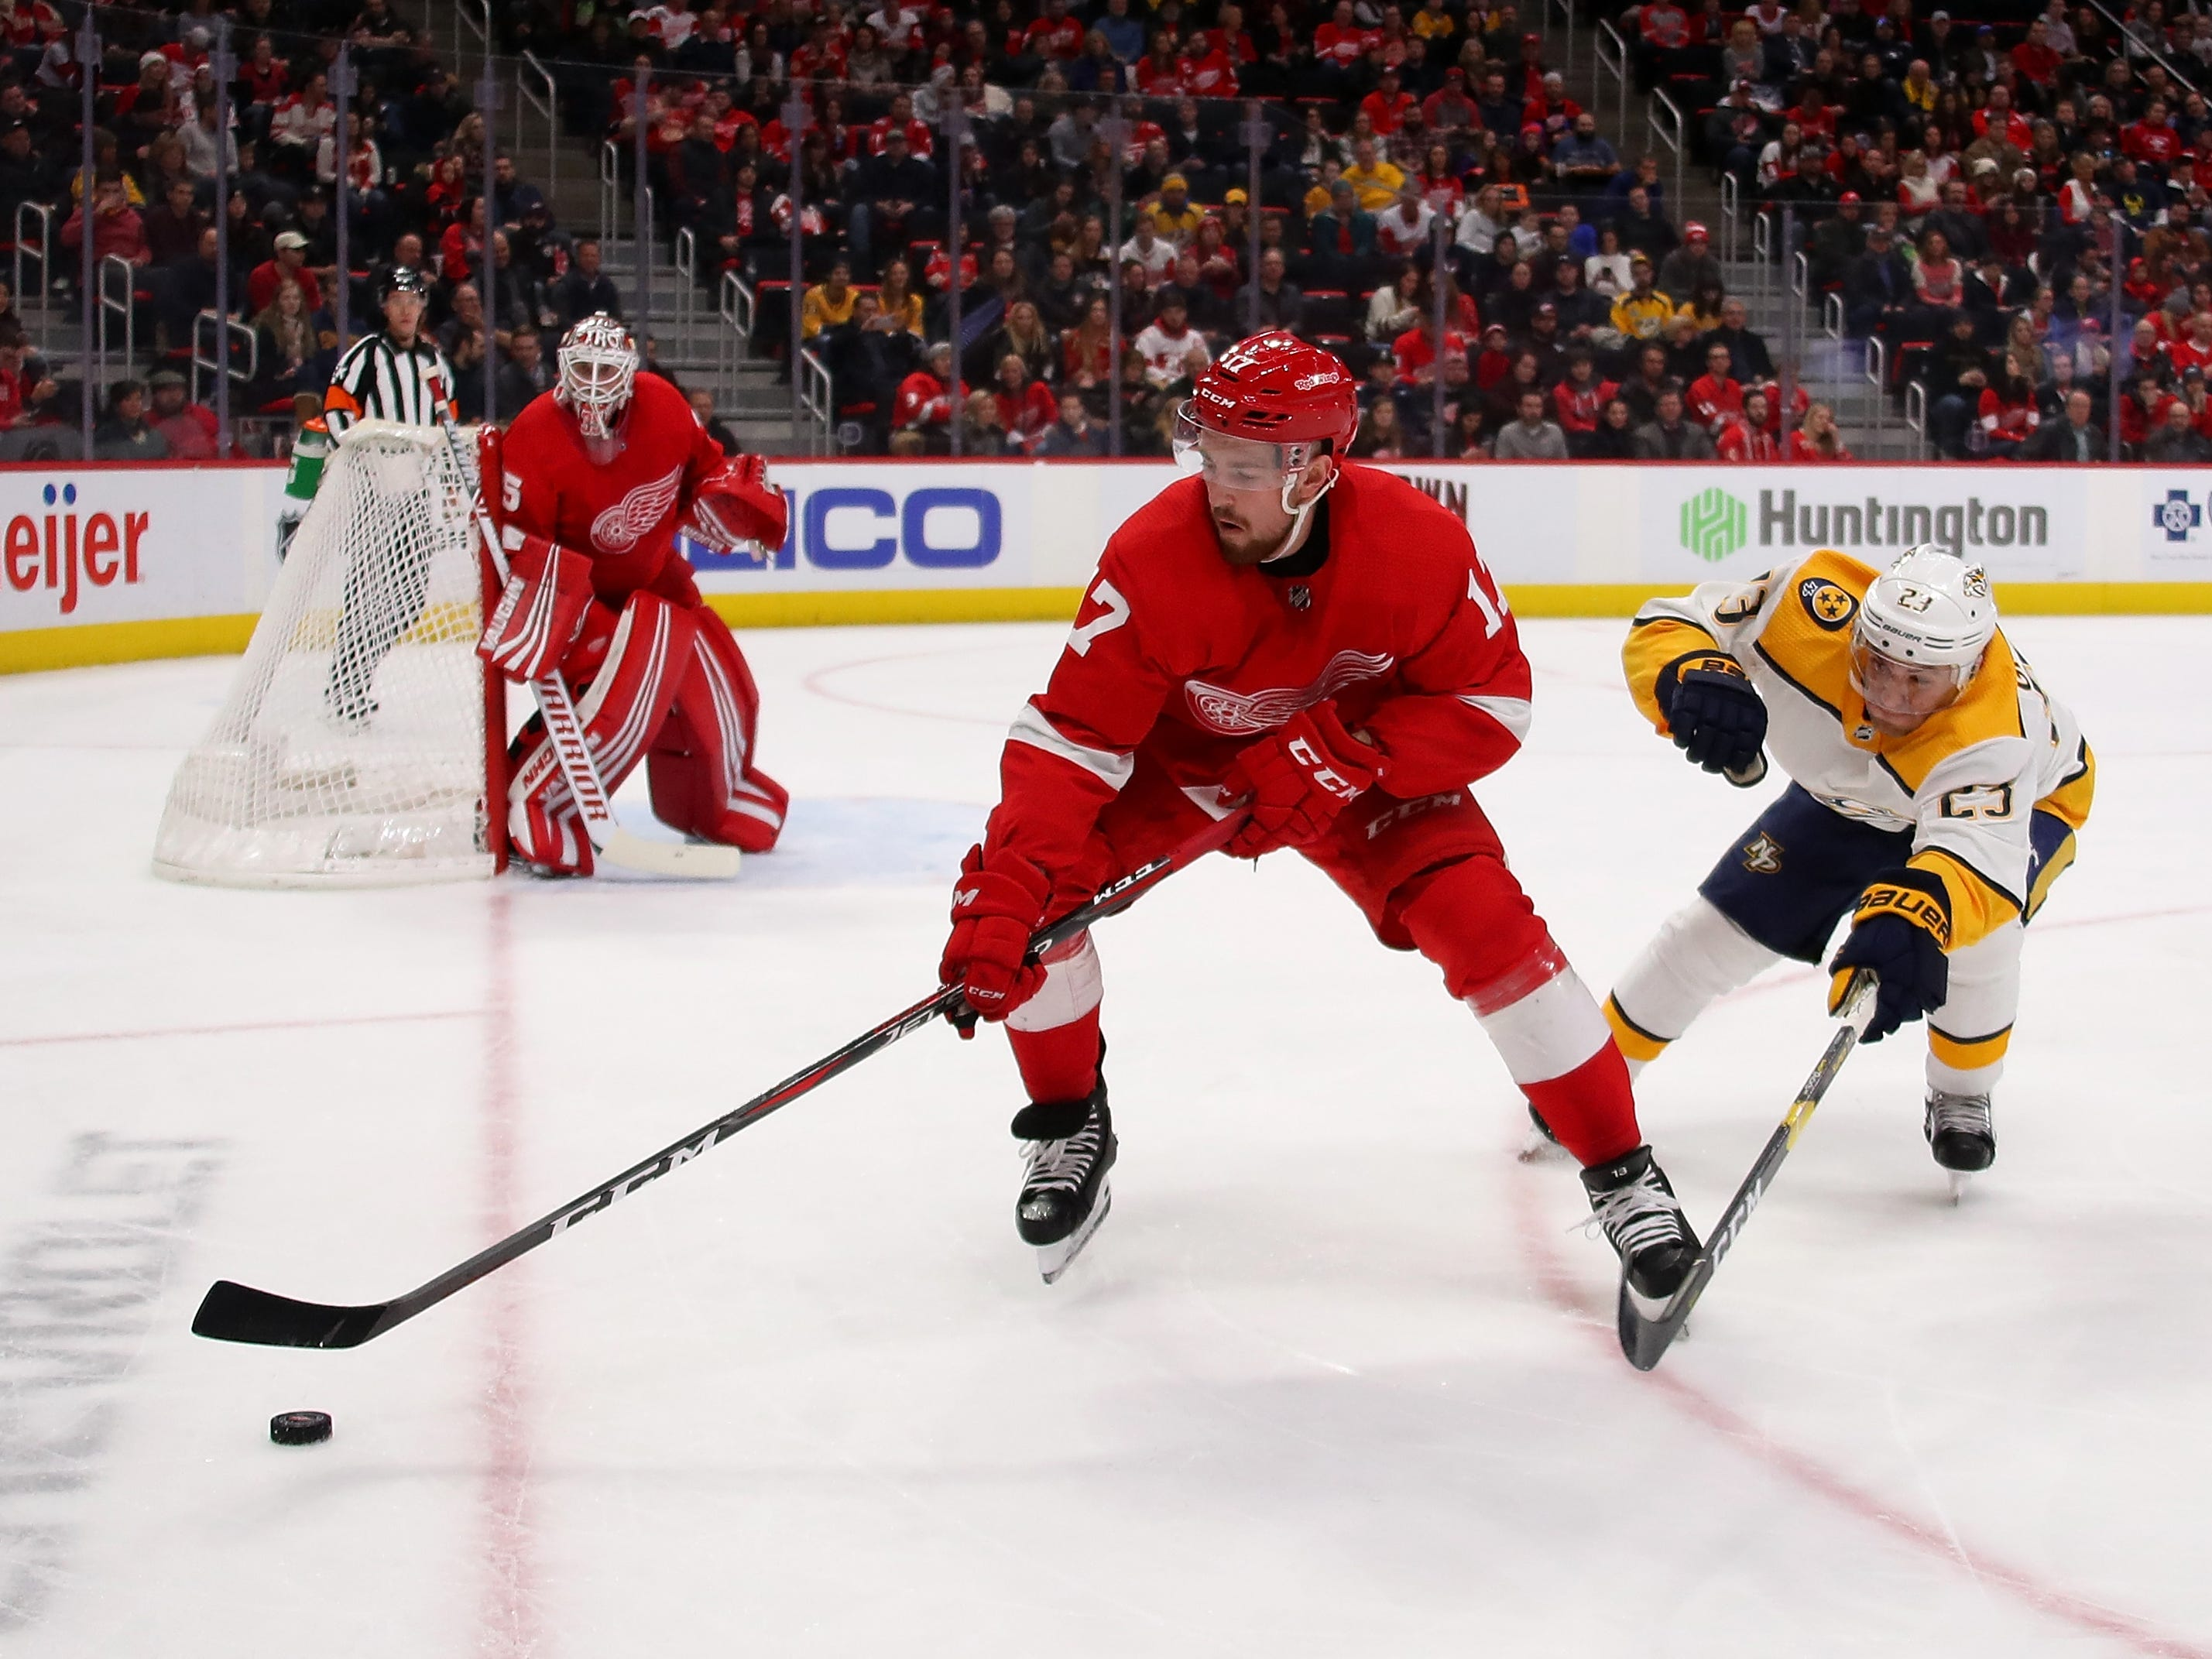 Red Wings' Filip Hronek (17) tries to control the puck next to Predators' Rocco Grimaldi (23) during the first period.